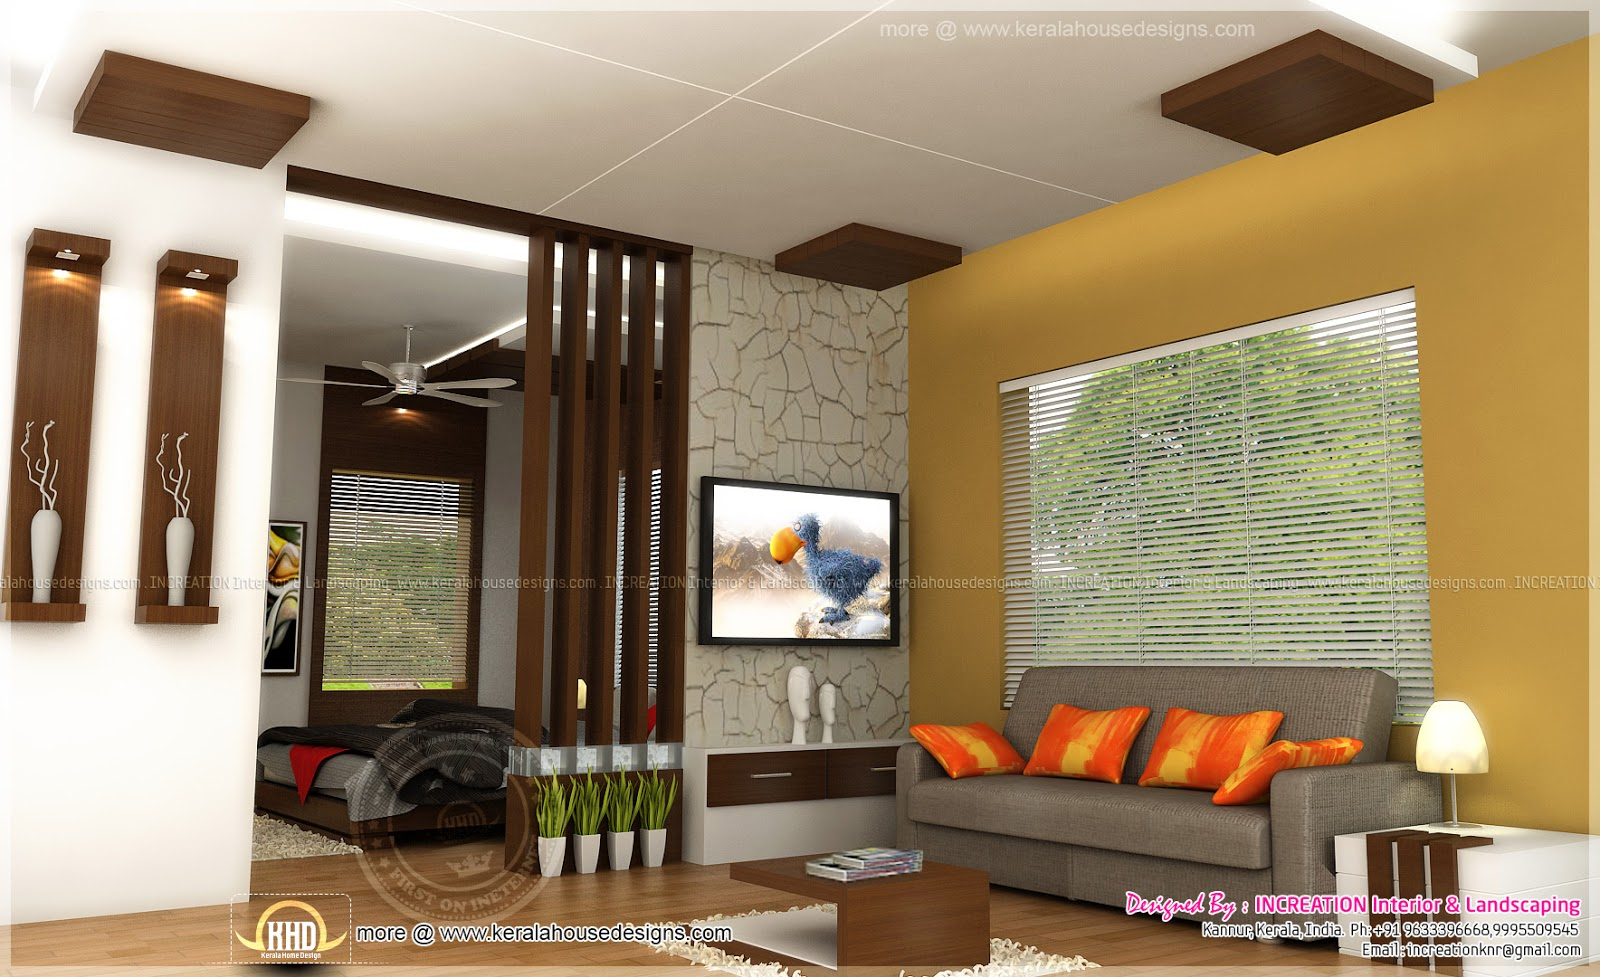 Interior designs from kannur kerala kerala home design - House interior design pictures living room ...